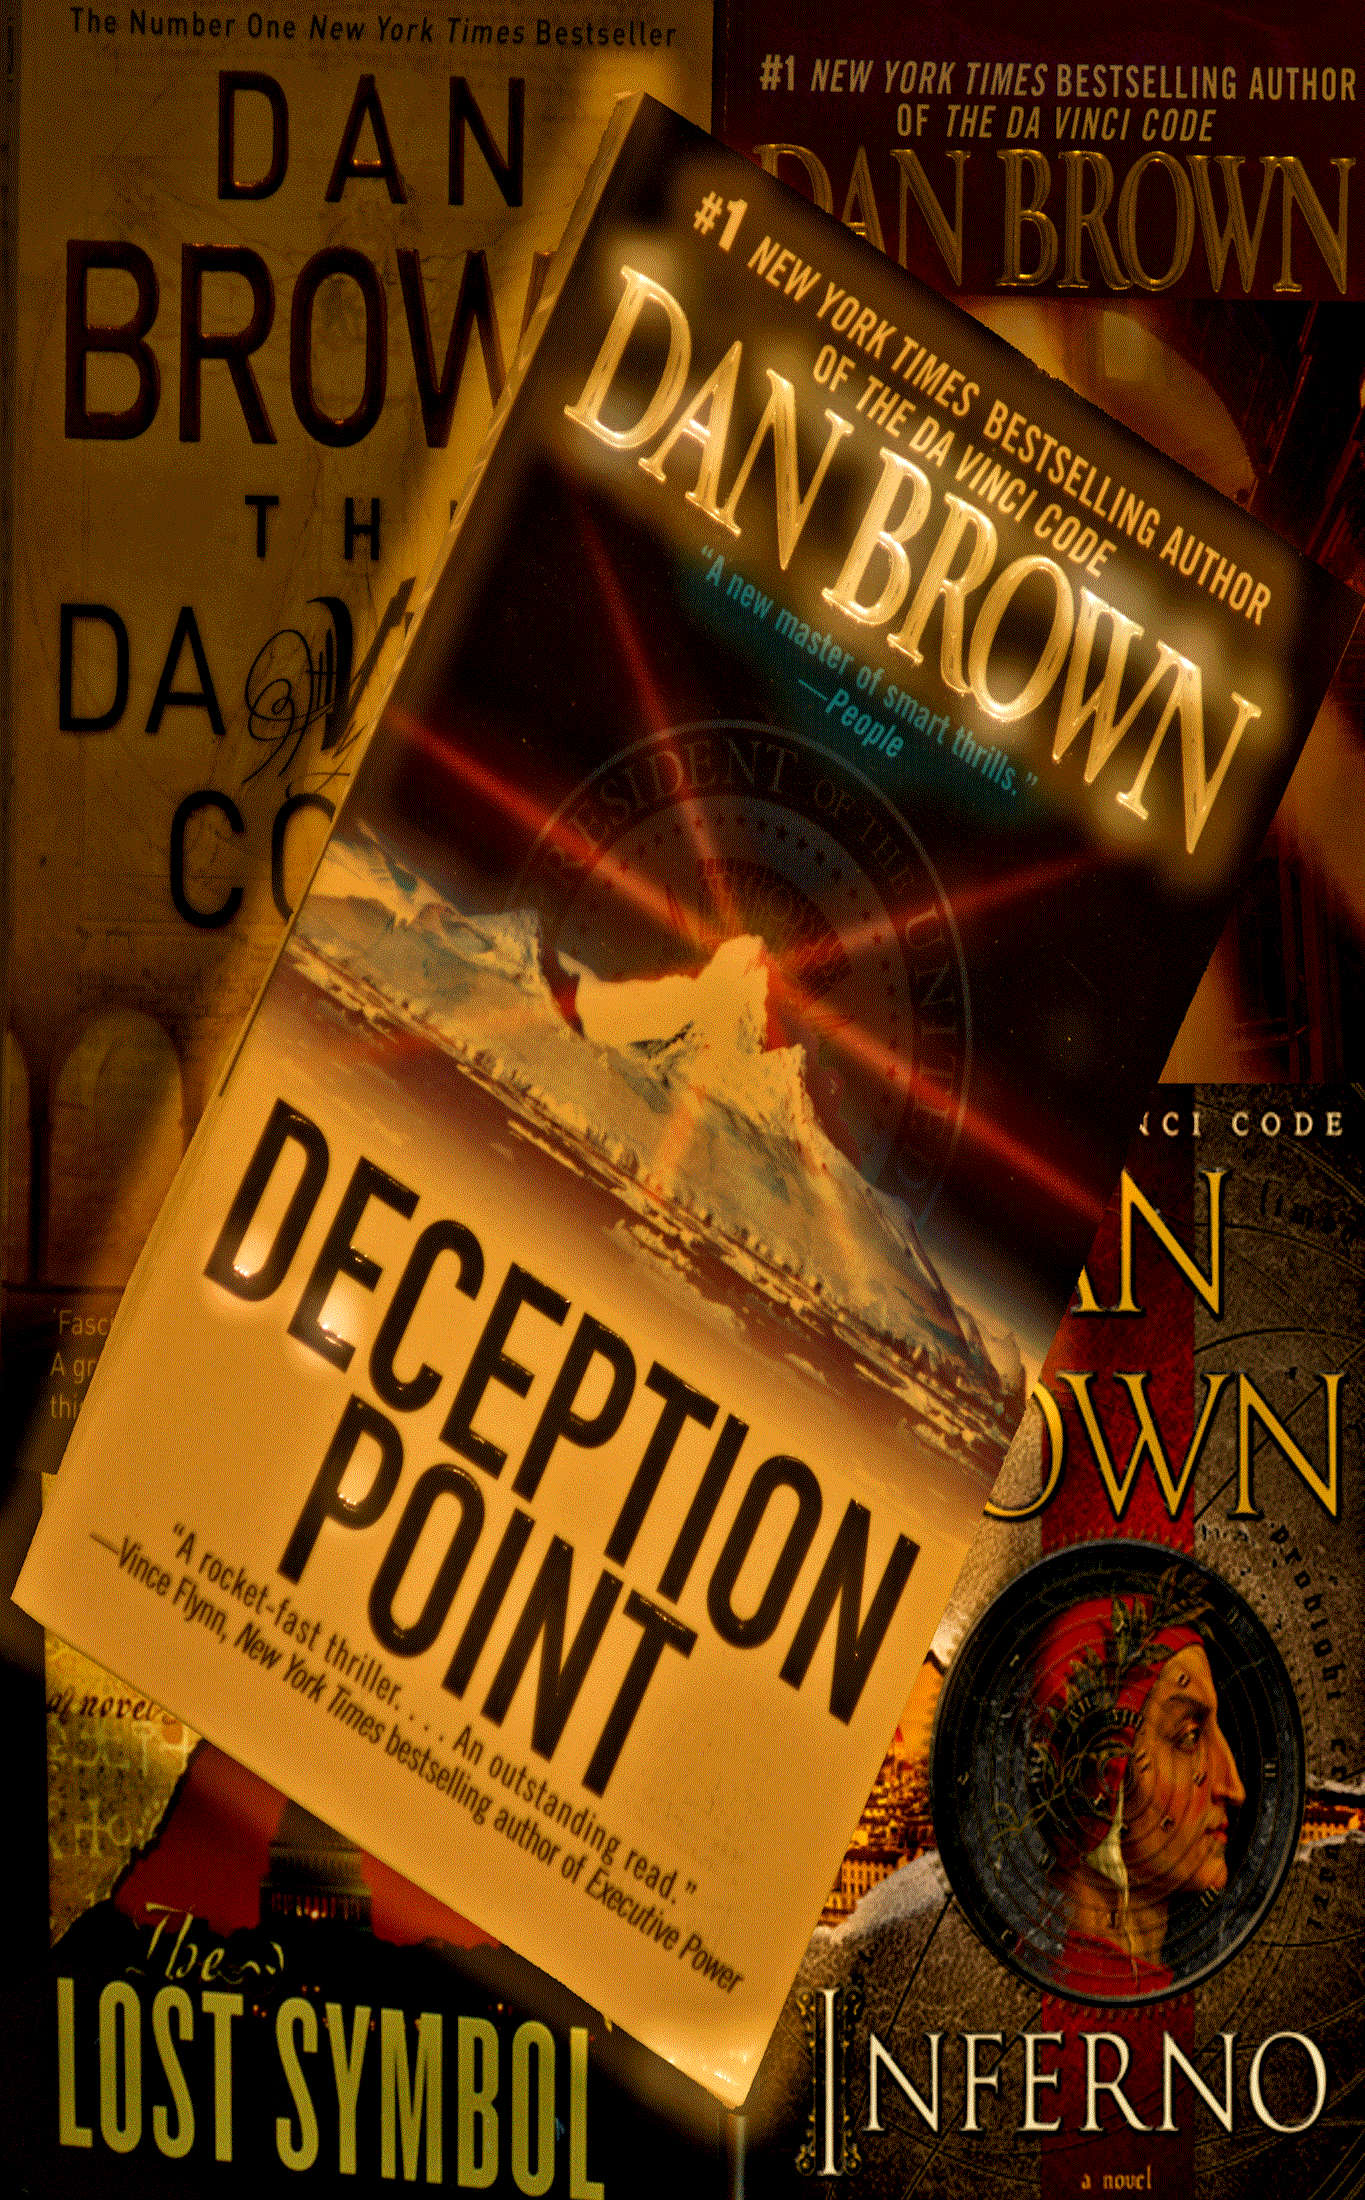 Deception point by dan brown wheres robert langdon no matter deception point by dan brown wheres robert langdon no matter you buycottarizona